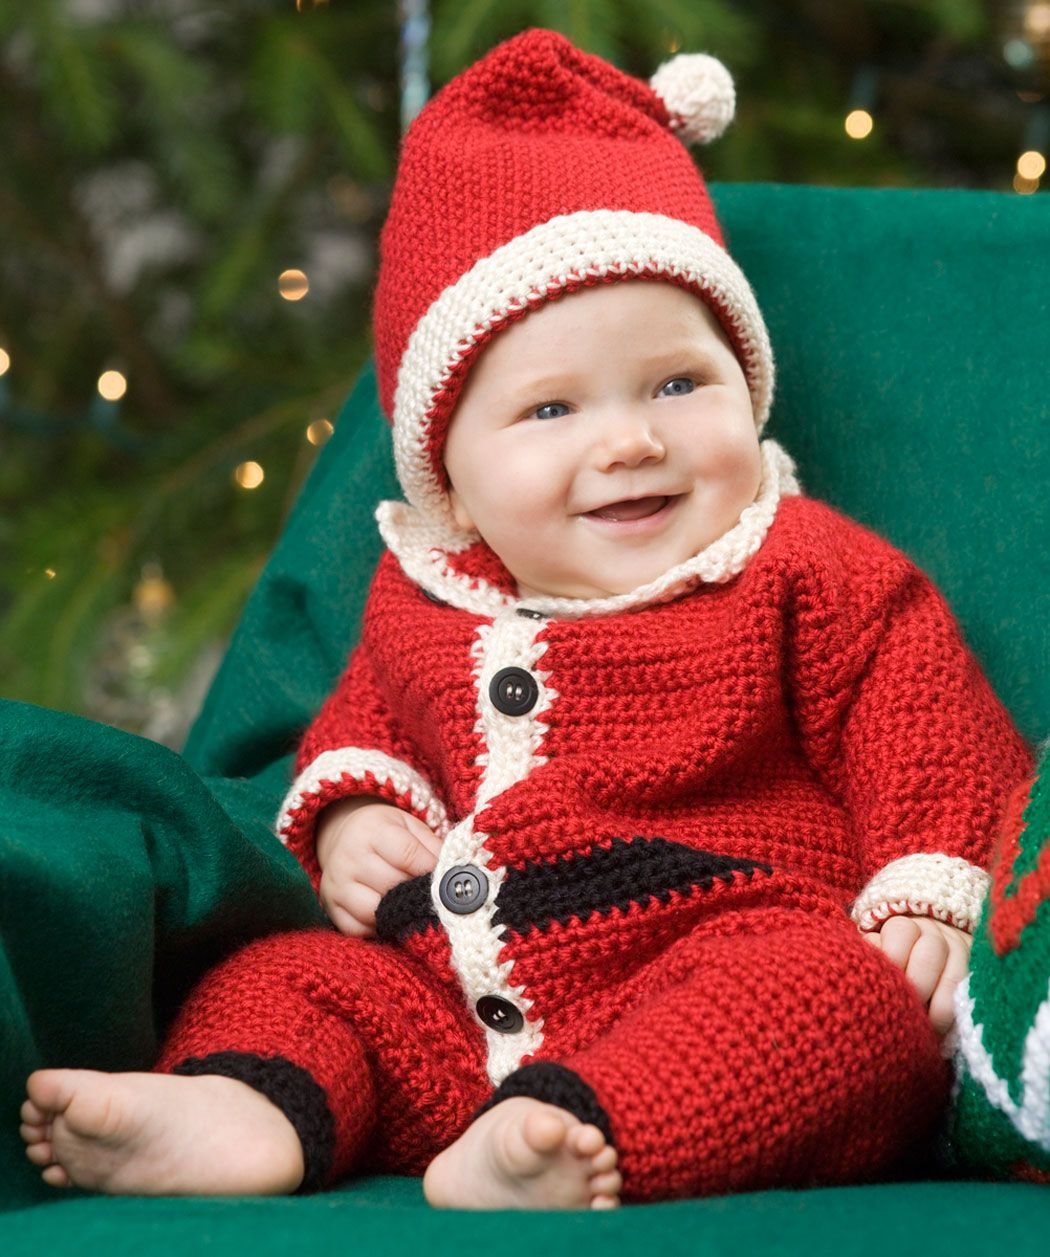 Infant Santa Suit Crochet Pattern by Red Heart yarns #Christmas ...